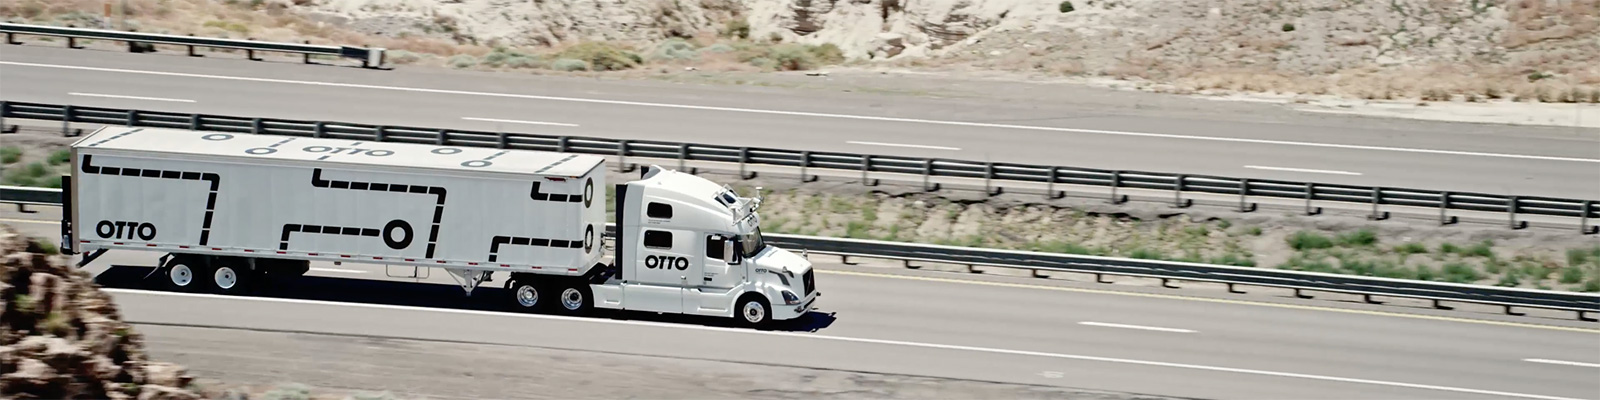 Otto – Self-Driving Trucks(Otto)